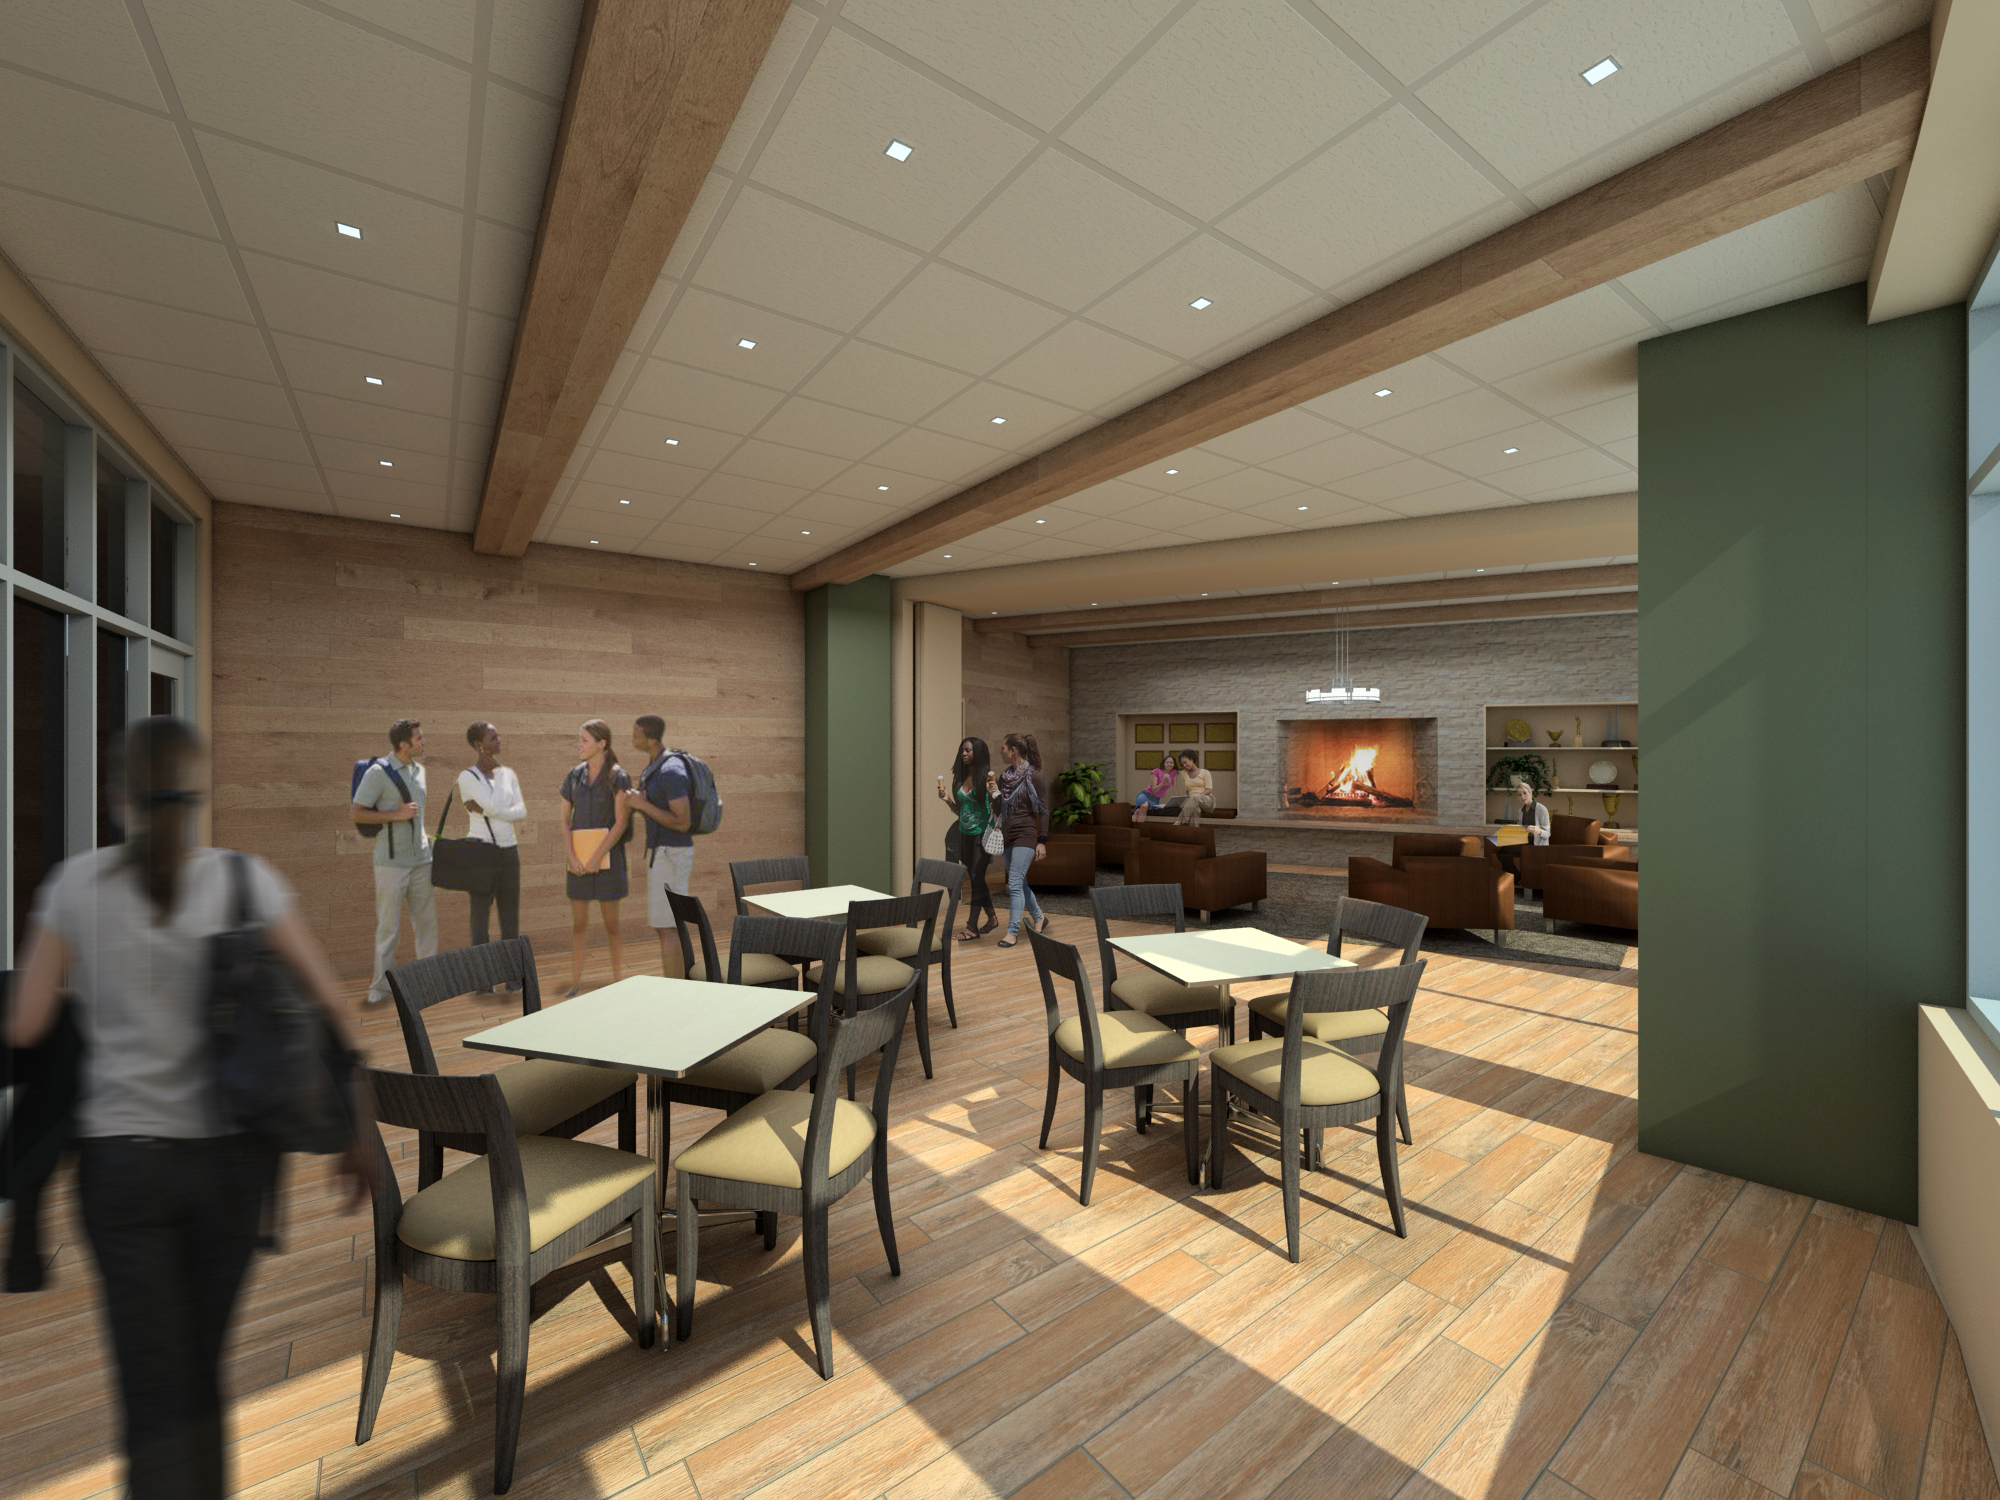 Interior Design Concept Approved By Design Committee Memorial Union